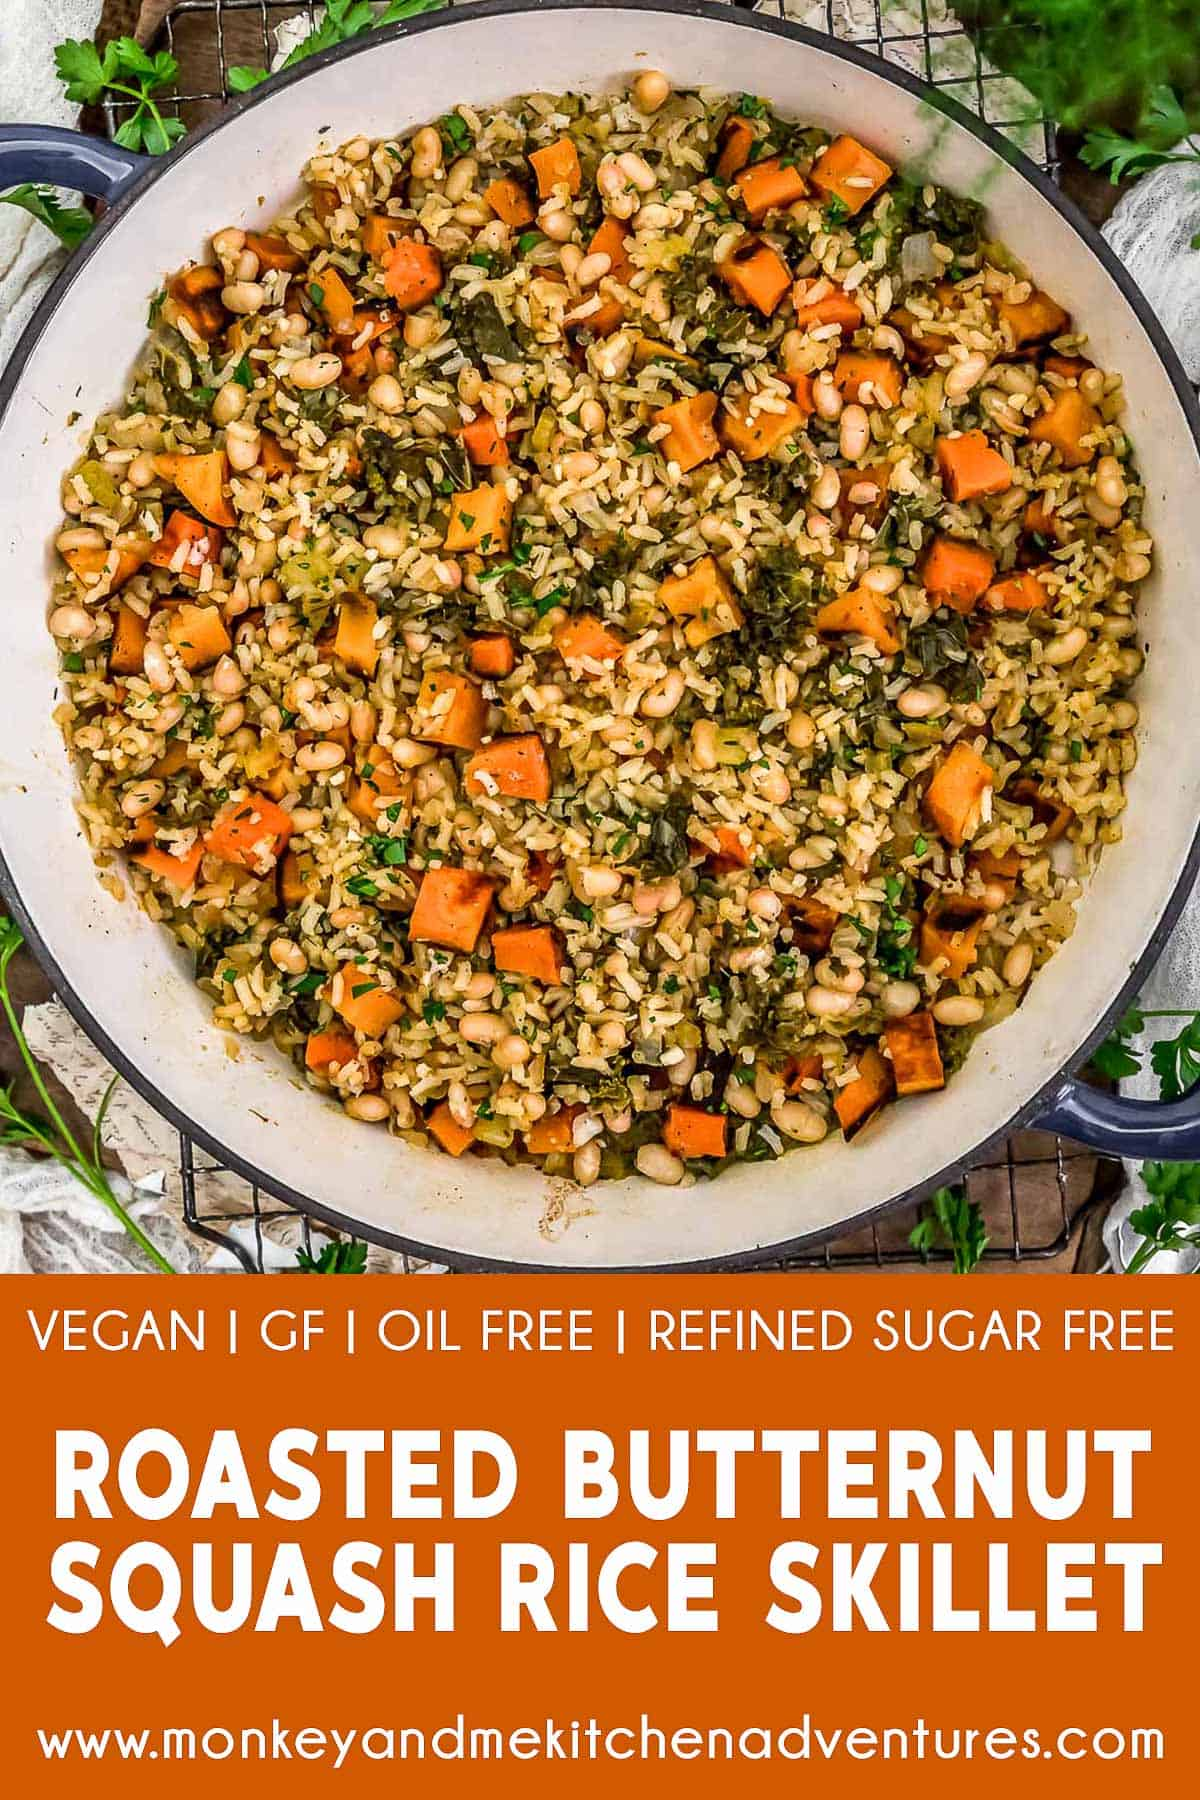 Roasted Butternut Squash Rice Skillet with text description